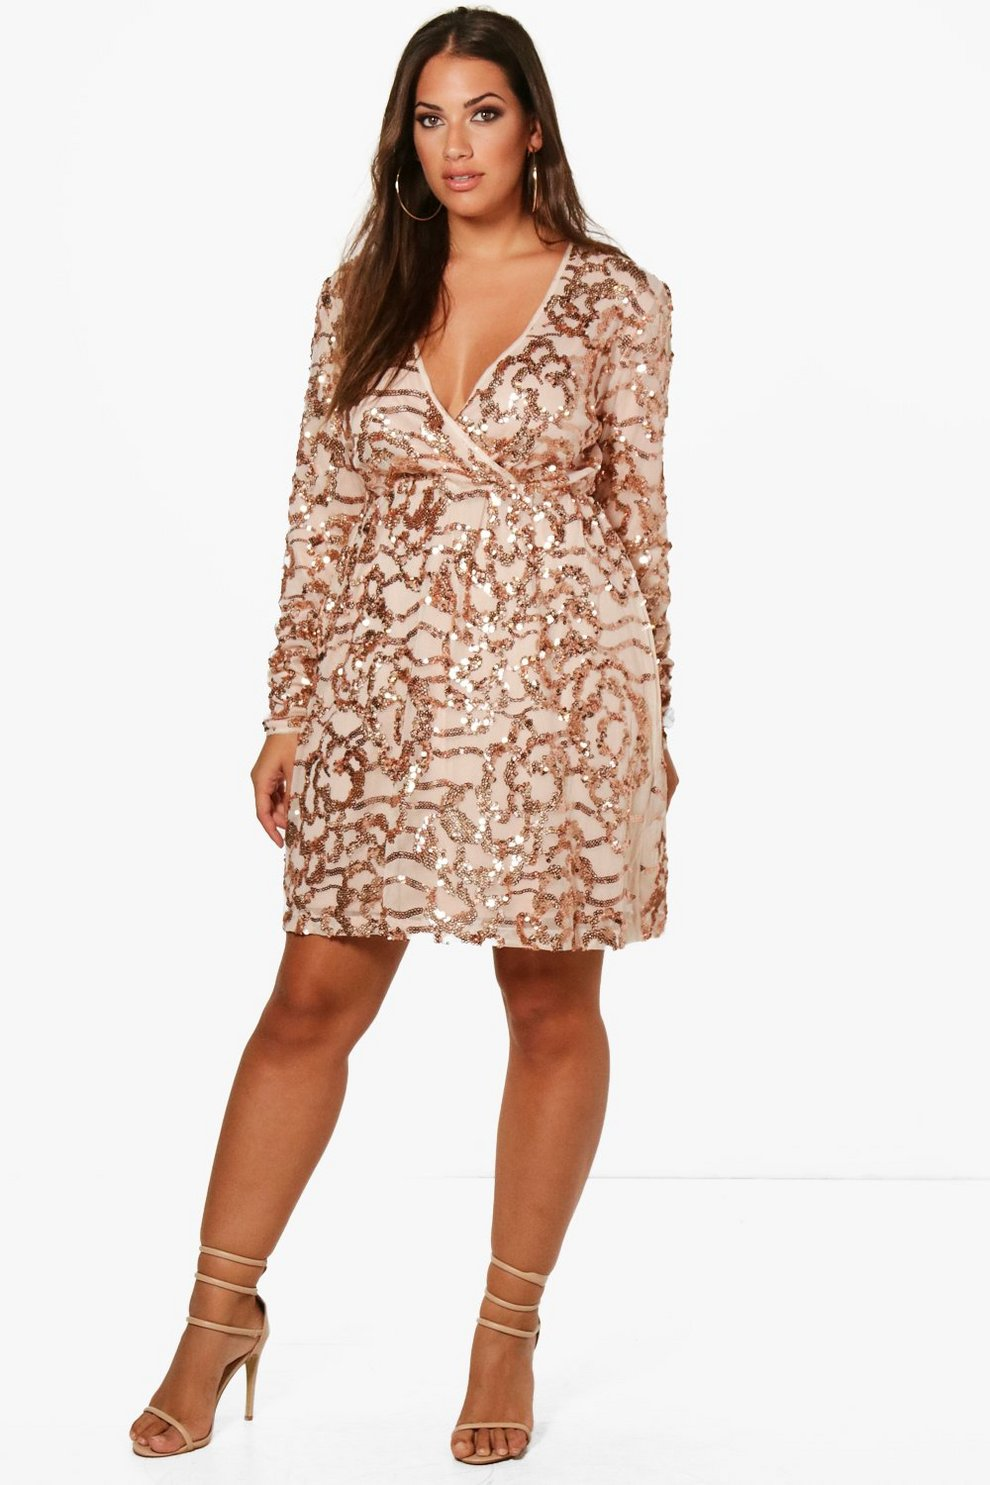 Boohoo Plus Rainbow Sequin Neck Dress Outlet Locations Cheap Price O1wANQ